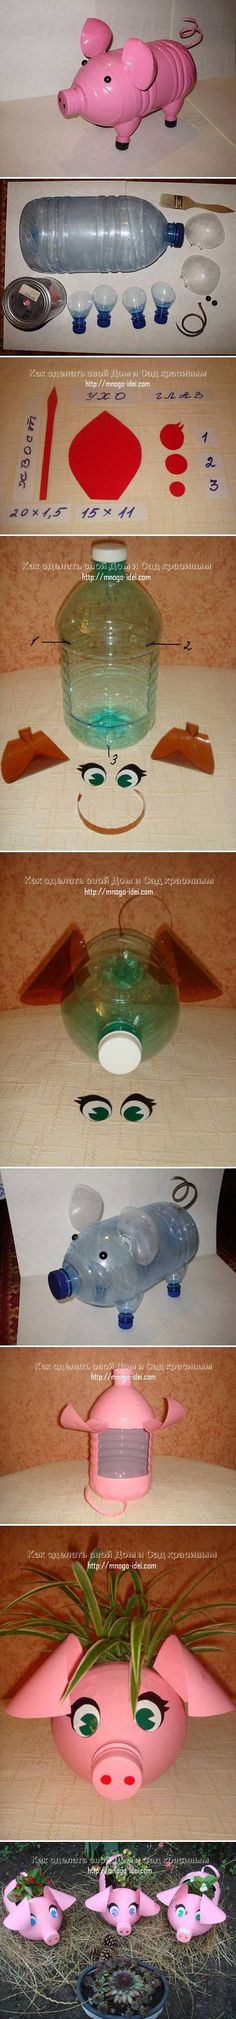 DIY Plastic Bottle